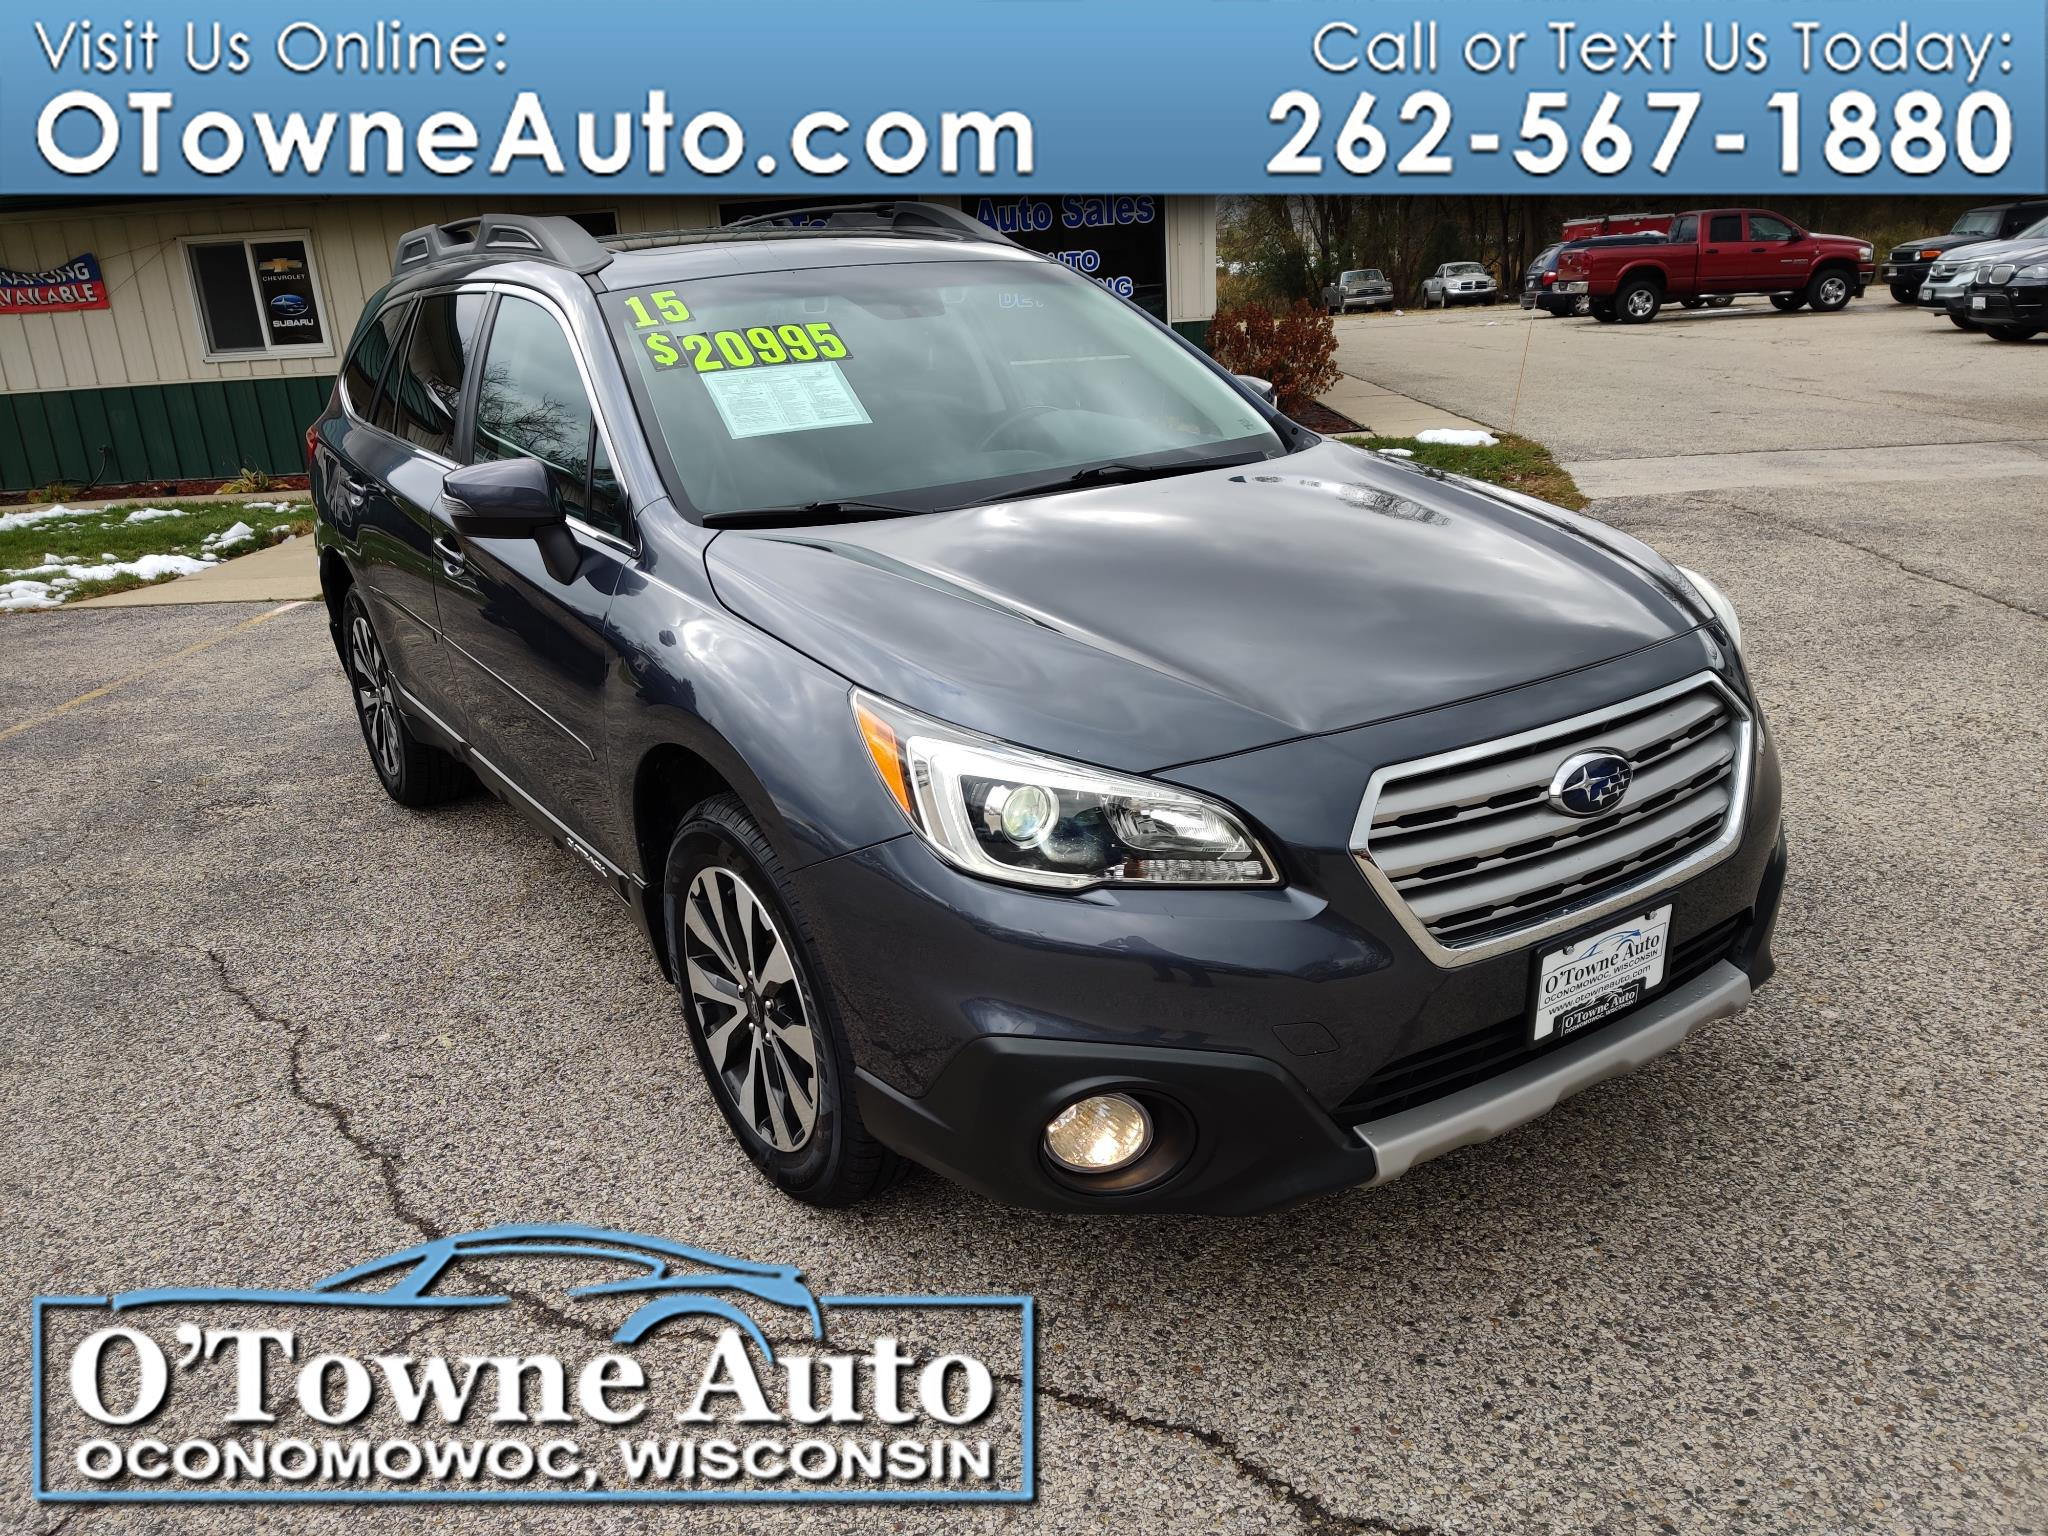 Subaru Outback 4dr Wgn 3.6R Limited 2015